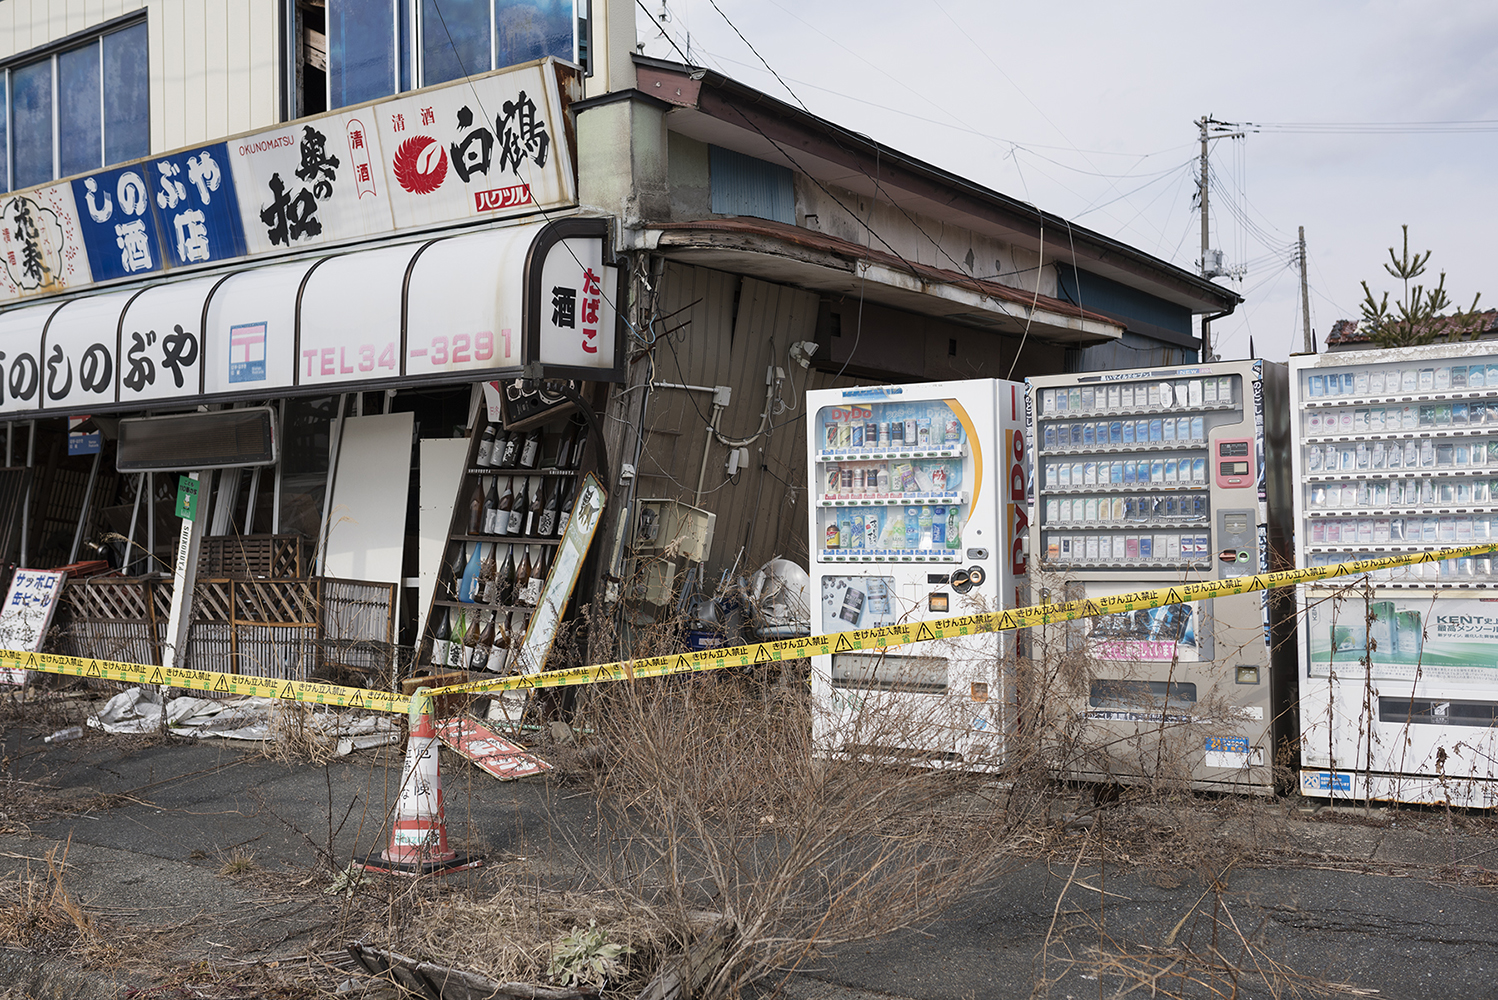 Vending machine and sake bottles outside a store in the abandoned city Namie, located between 5-15 km north of the Fukushima Daiichi Nuclear Power Plant. The city had a population of 18000 people that was evacuated after the disaster. The evacuation area around Fukushima Daiichi is divided in 3 zones. Namie is now on the border of zone 2 and the highest zone 3 where people are not allowed to move back for a long time. Zone 2 is the area that is being prepared for people to return to, as early as 2017 when evacuated citizens will loose their right to the limited compensation they are now receiving. Even after decontamination, most of the area remains dangerously radioactive.According to Greenpeace, it is unacceptable to force the population to return to an area that is still significantly contaminated, even after cleaned up.